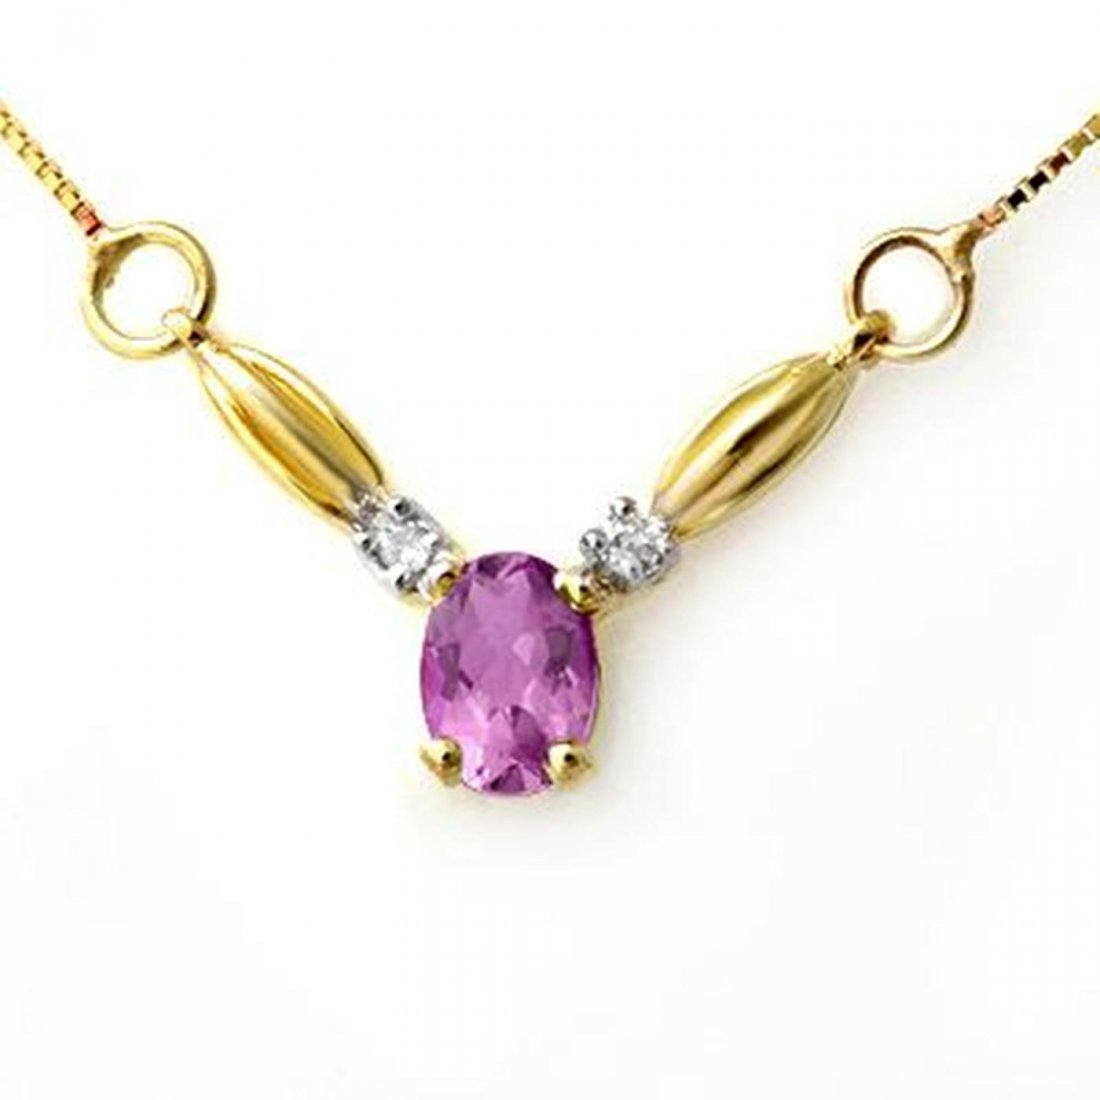 5J: Genuine 1.30 ctw Amethyst & Diamond Necklace 10K Go